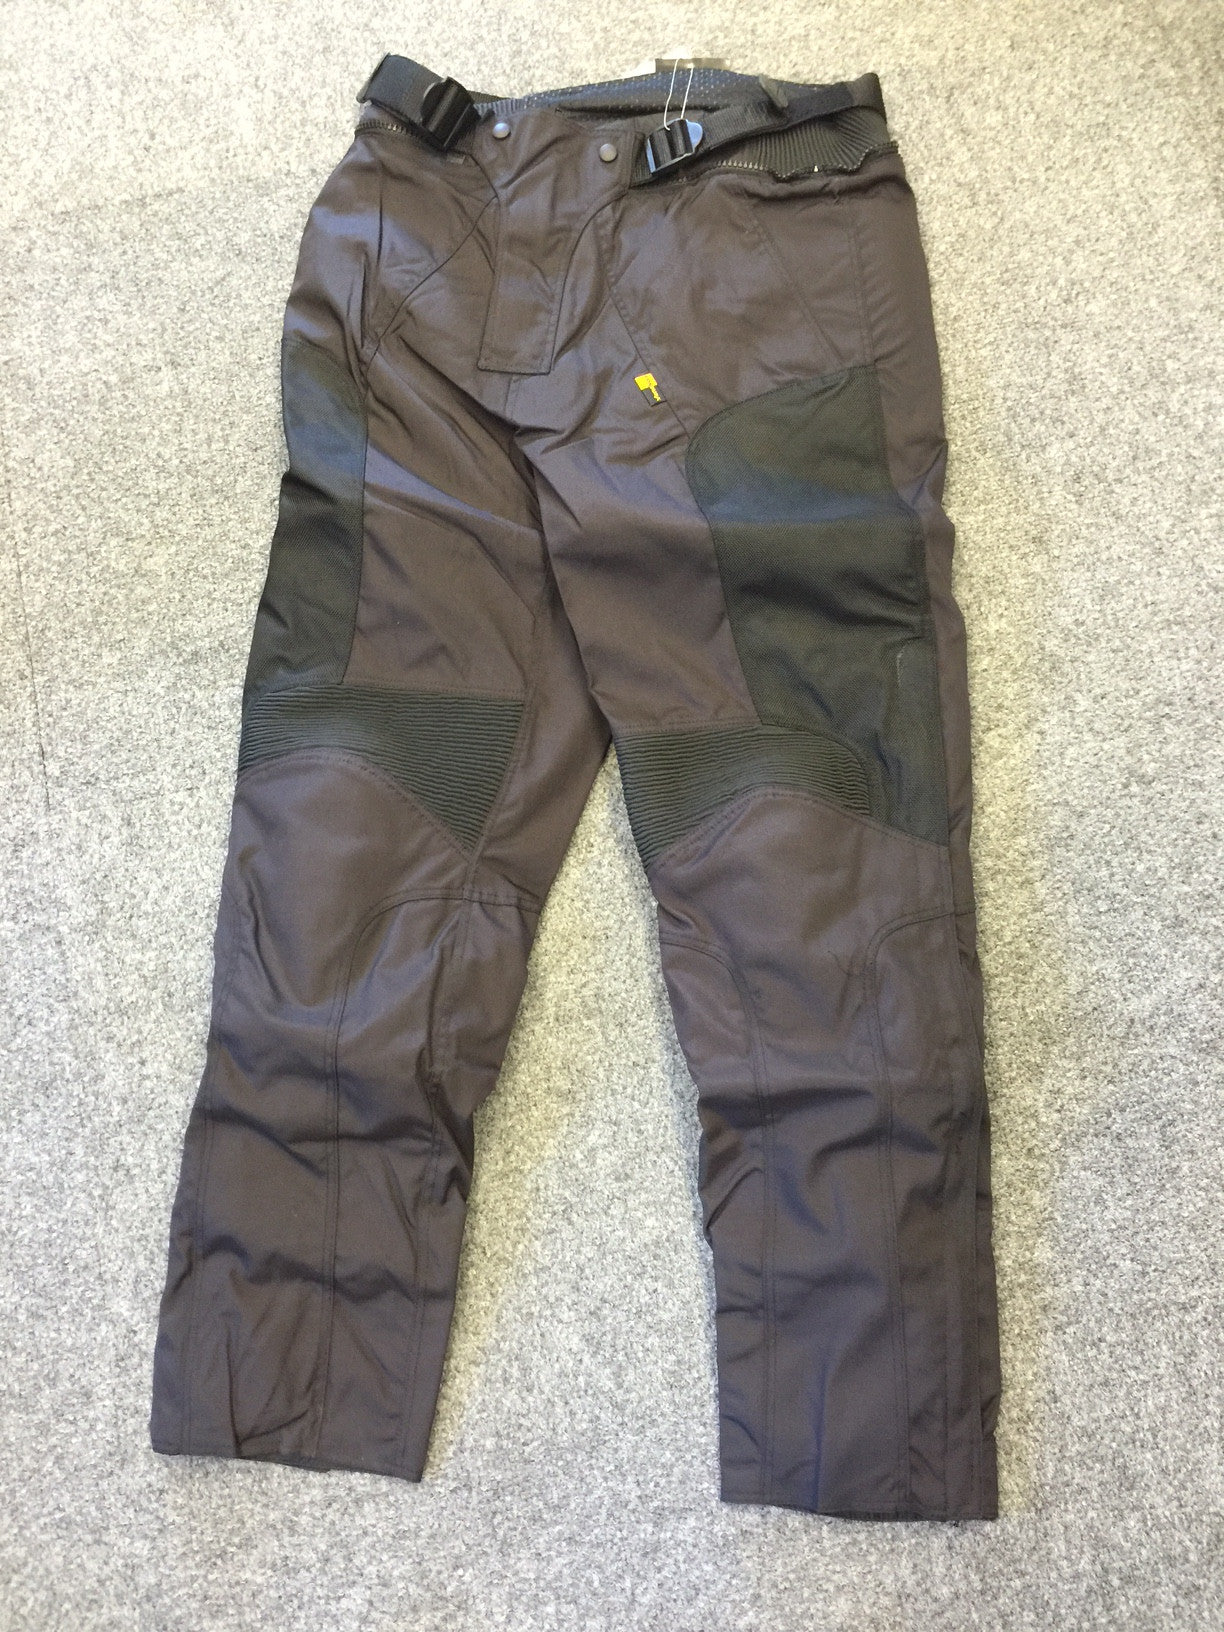 Army surplus Cordura motorcycle trousers LARGE new in packing